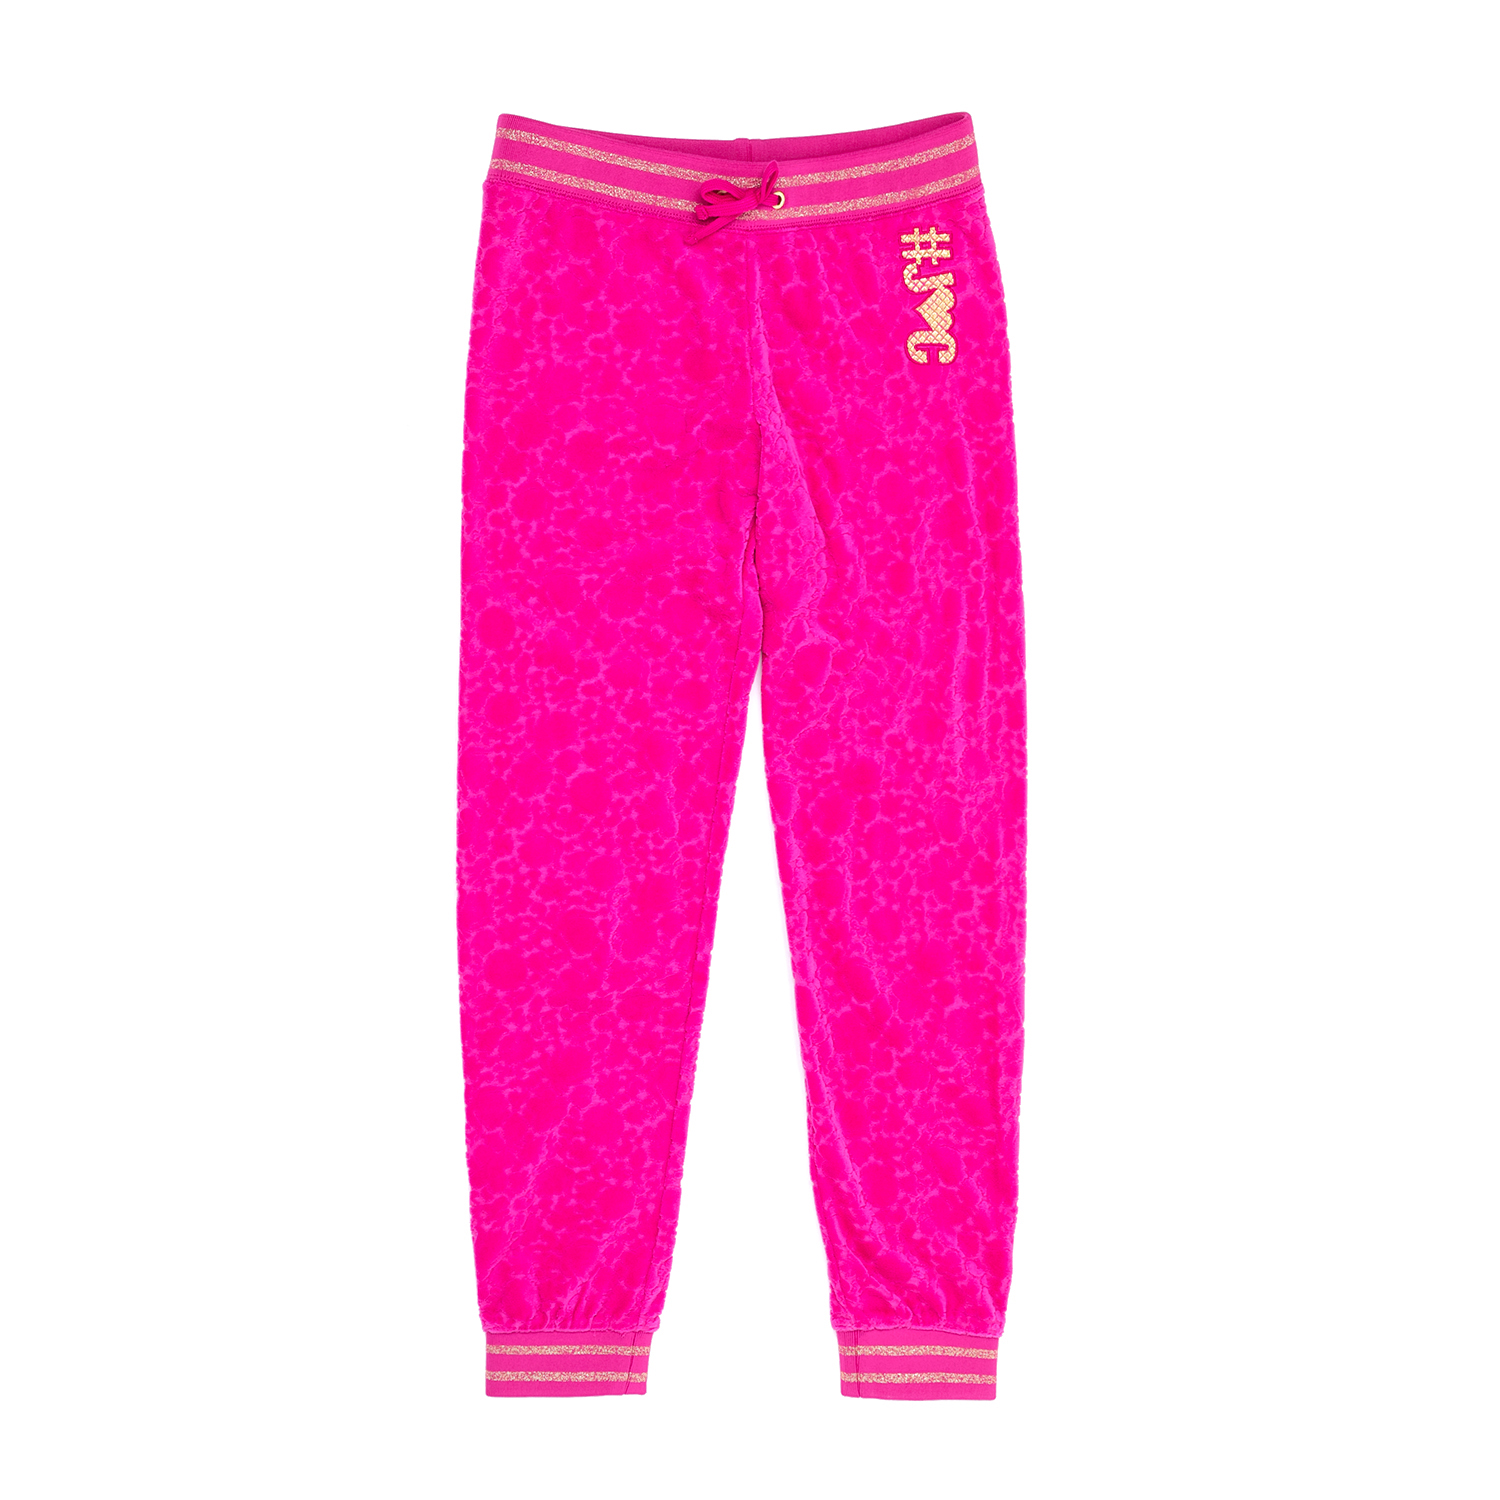 JUICY COUTURE KIDS – Παιδικό παντελόνι JUICY COUTURE KIDS ροζ